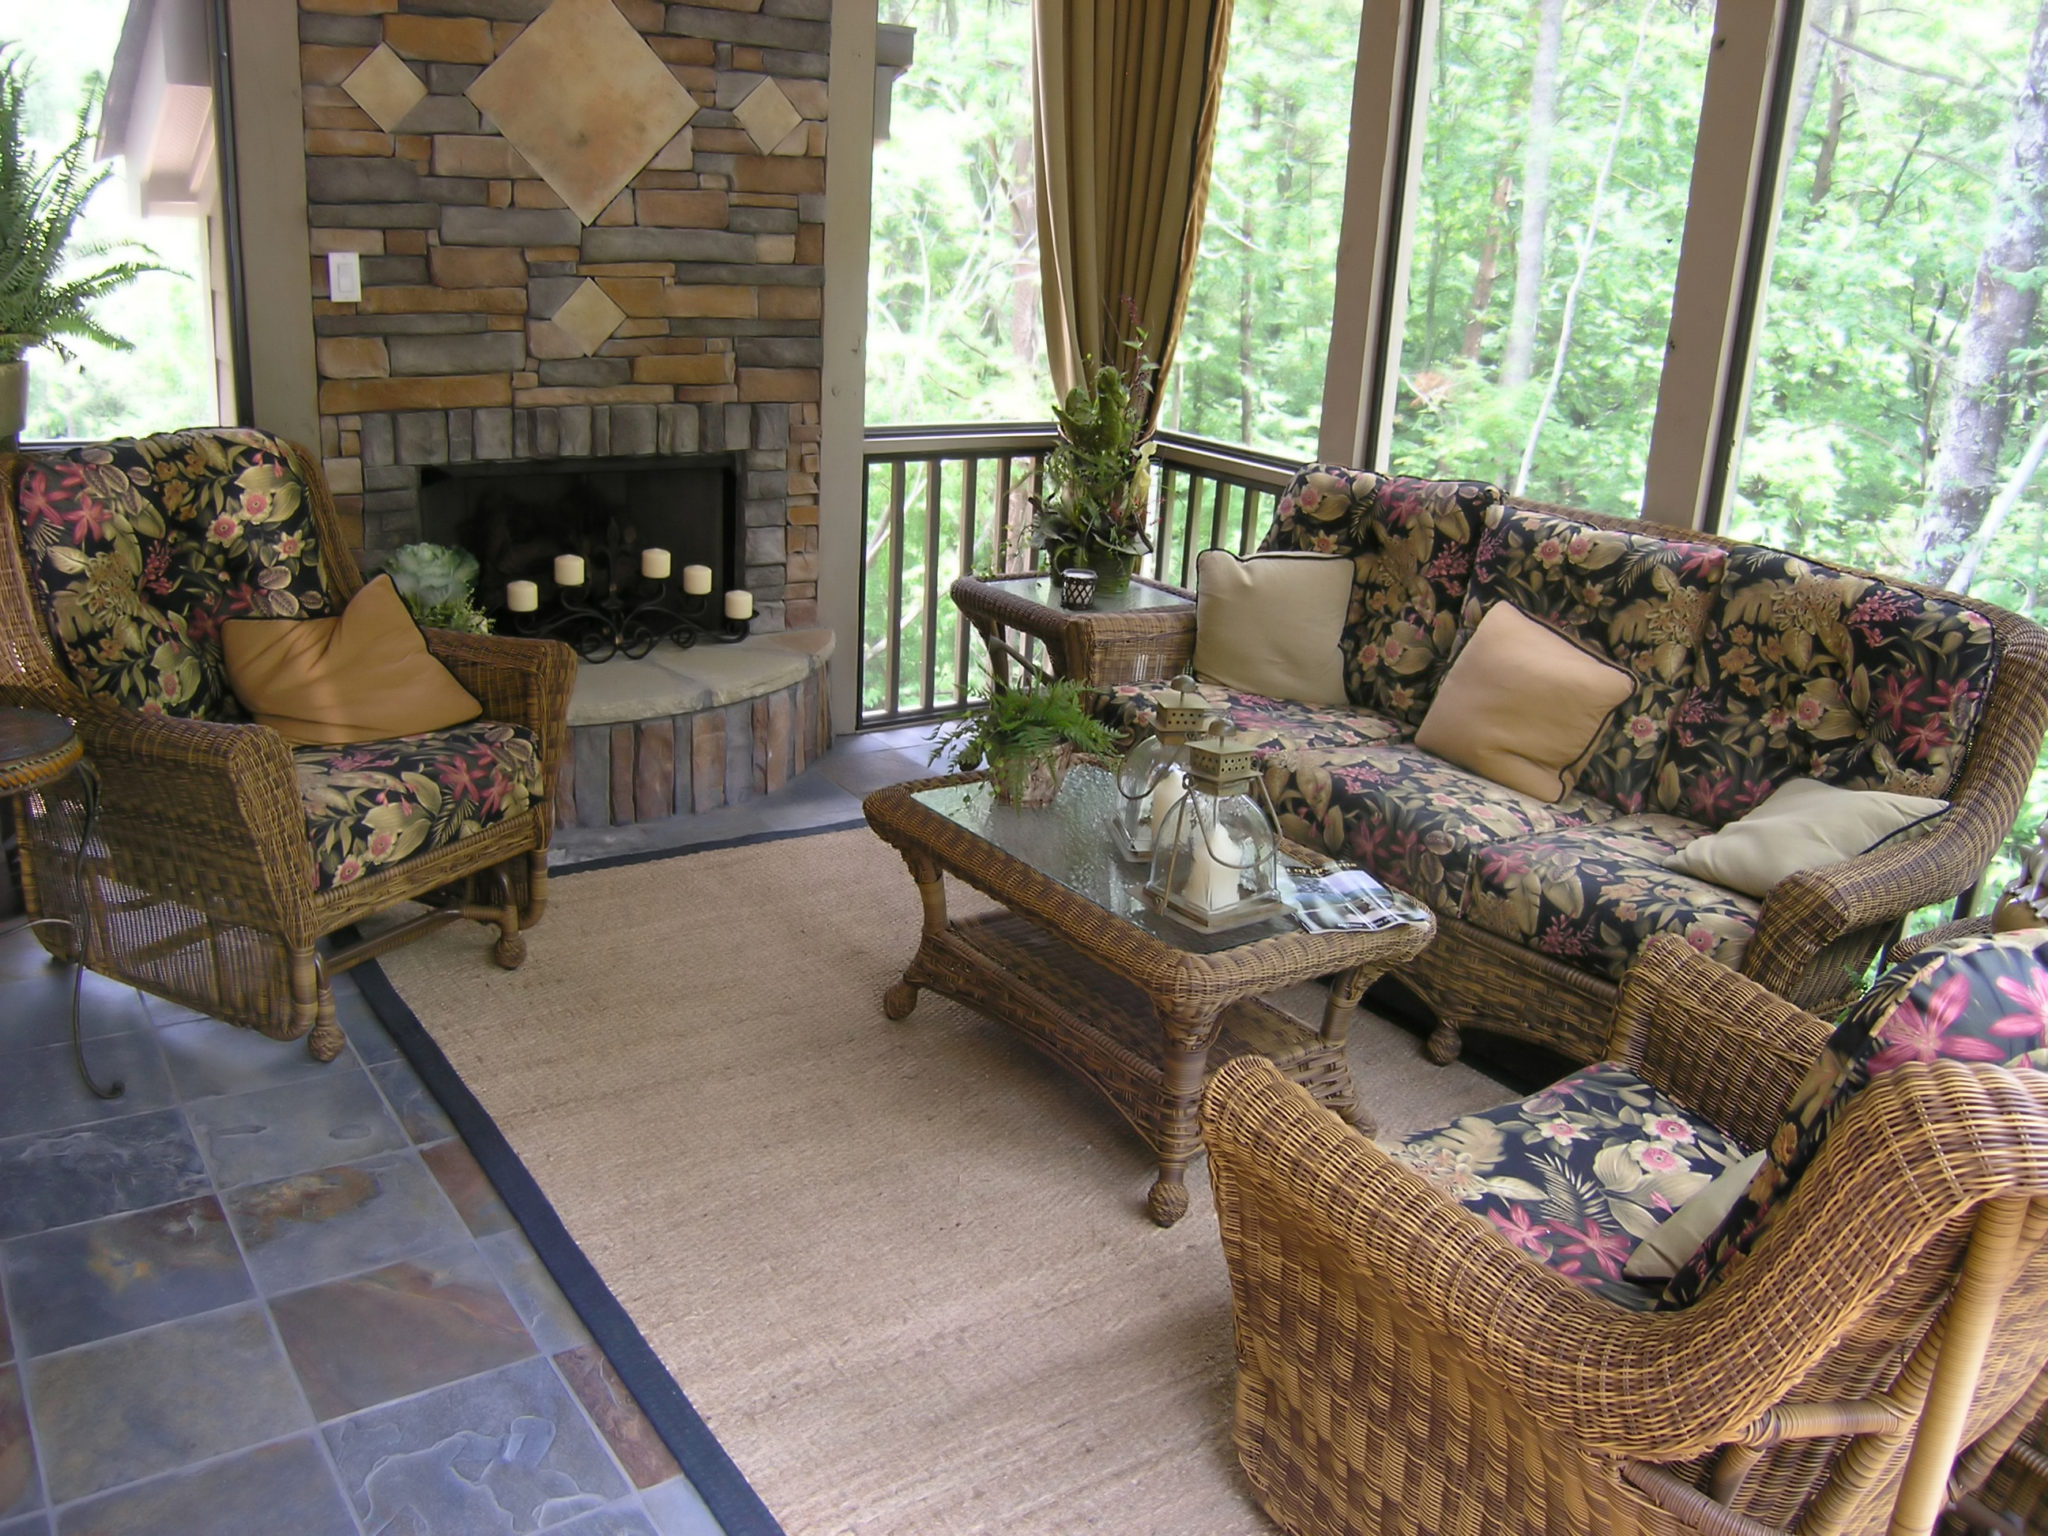 Home Staging: Making Your Home Sellable